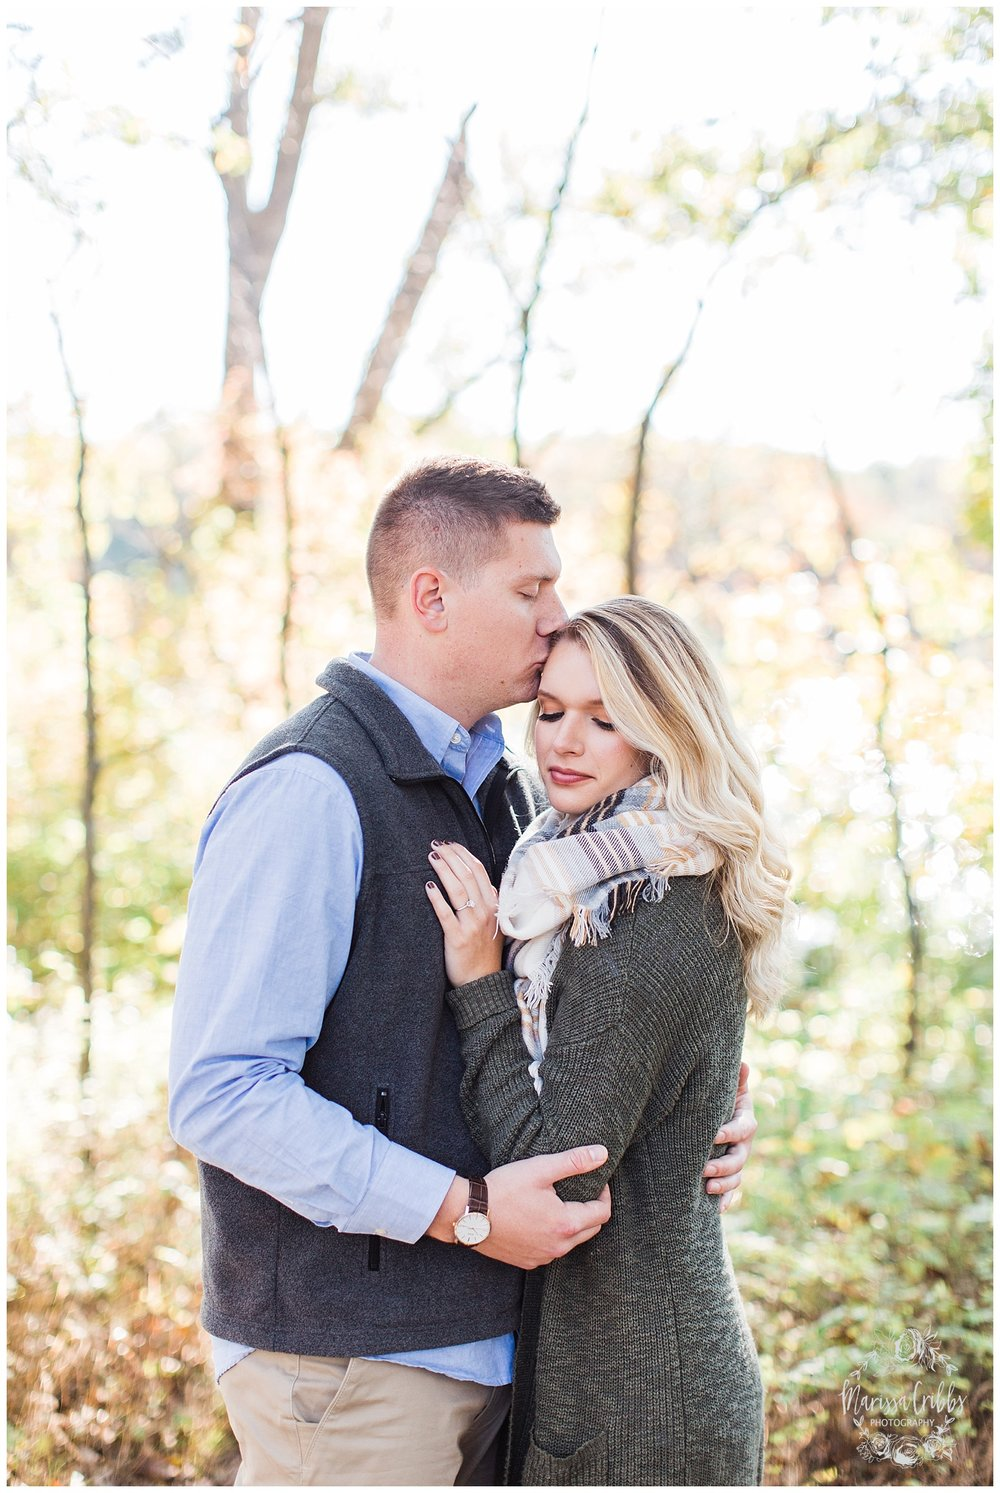 MORGAN HUGHES & RYAN ENGAGEMENT | KC ENGAGEMENT PHOTOS | MARISSA CRIBBS PHOTOGRAPHY_3382.jpg